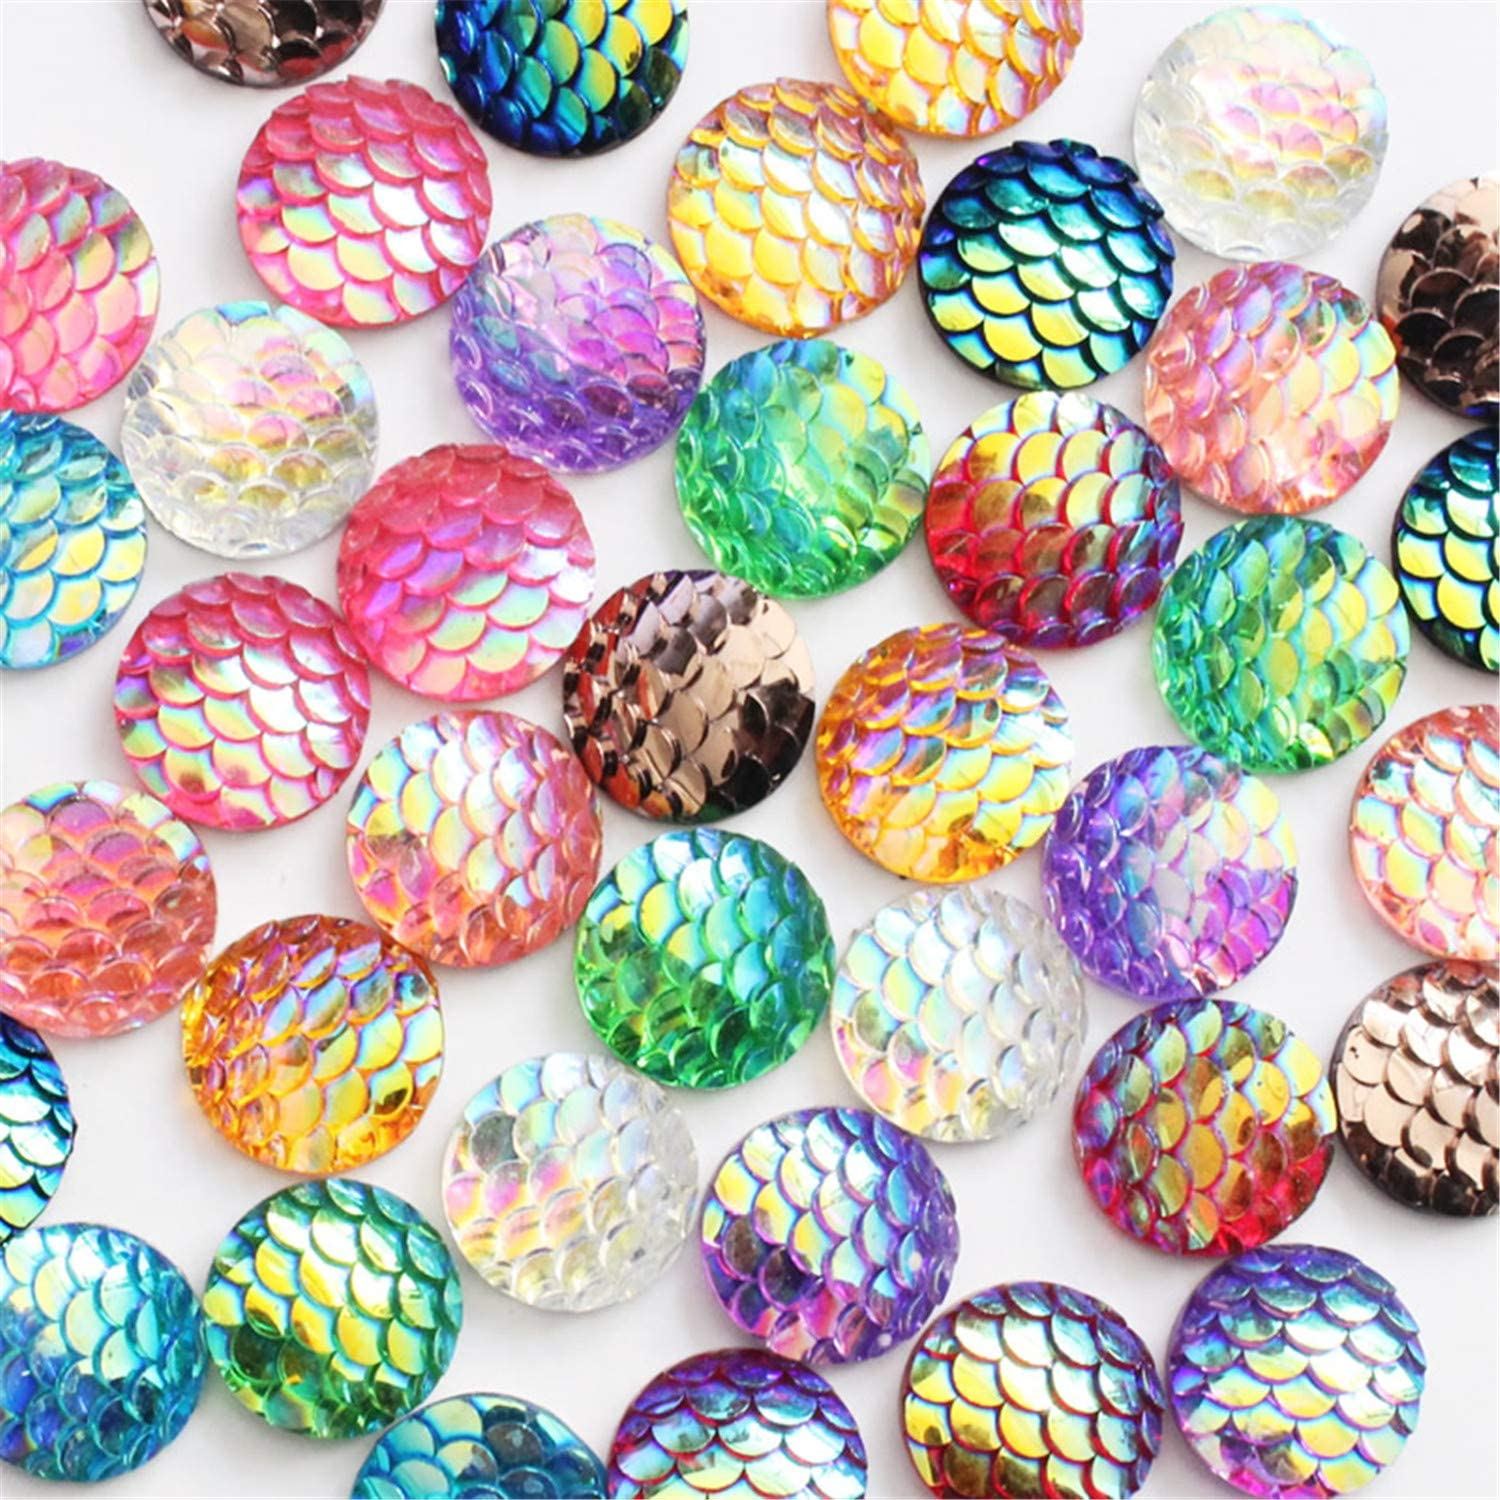 Multi-color Alysee 200 Pieces 10mm Mixed Round Resin Cabochon Flatback Druzy Iridescent Colorful Mermaid Scale Cabochons DIY Accessories